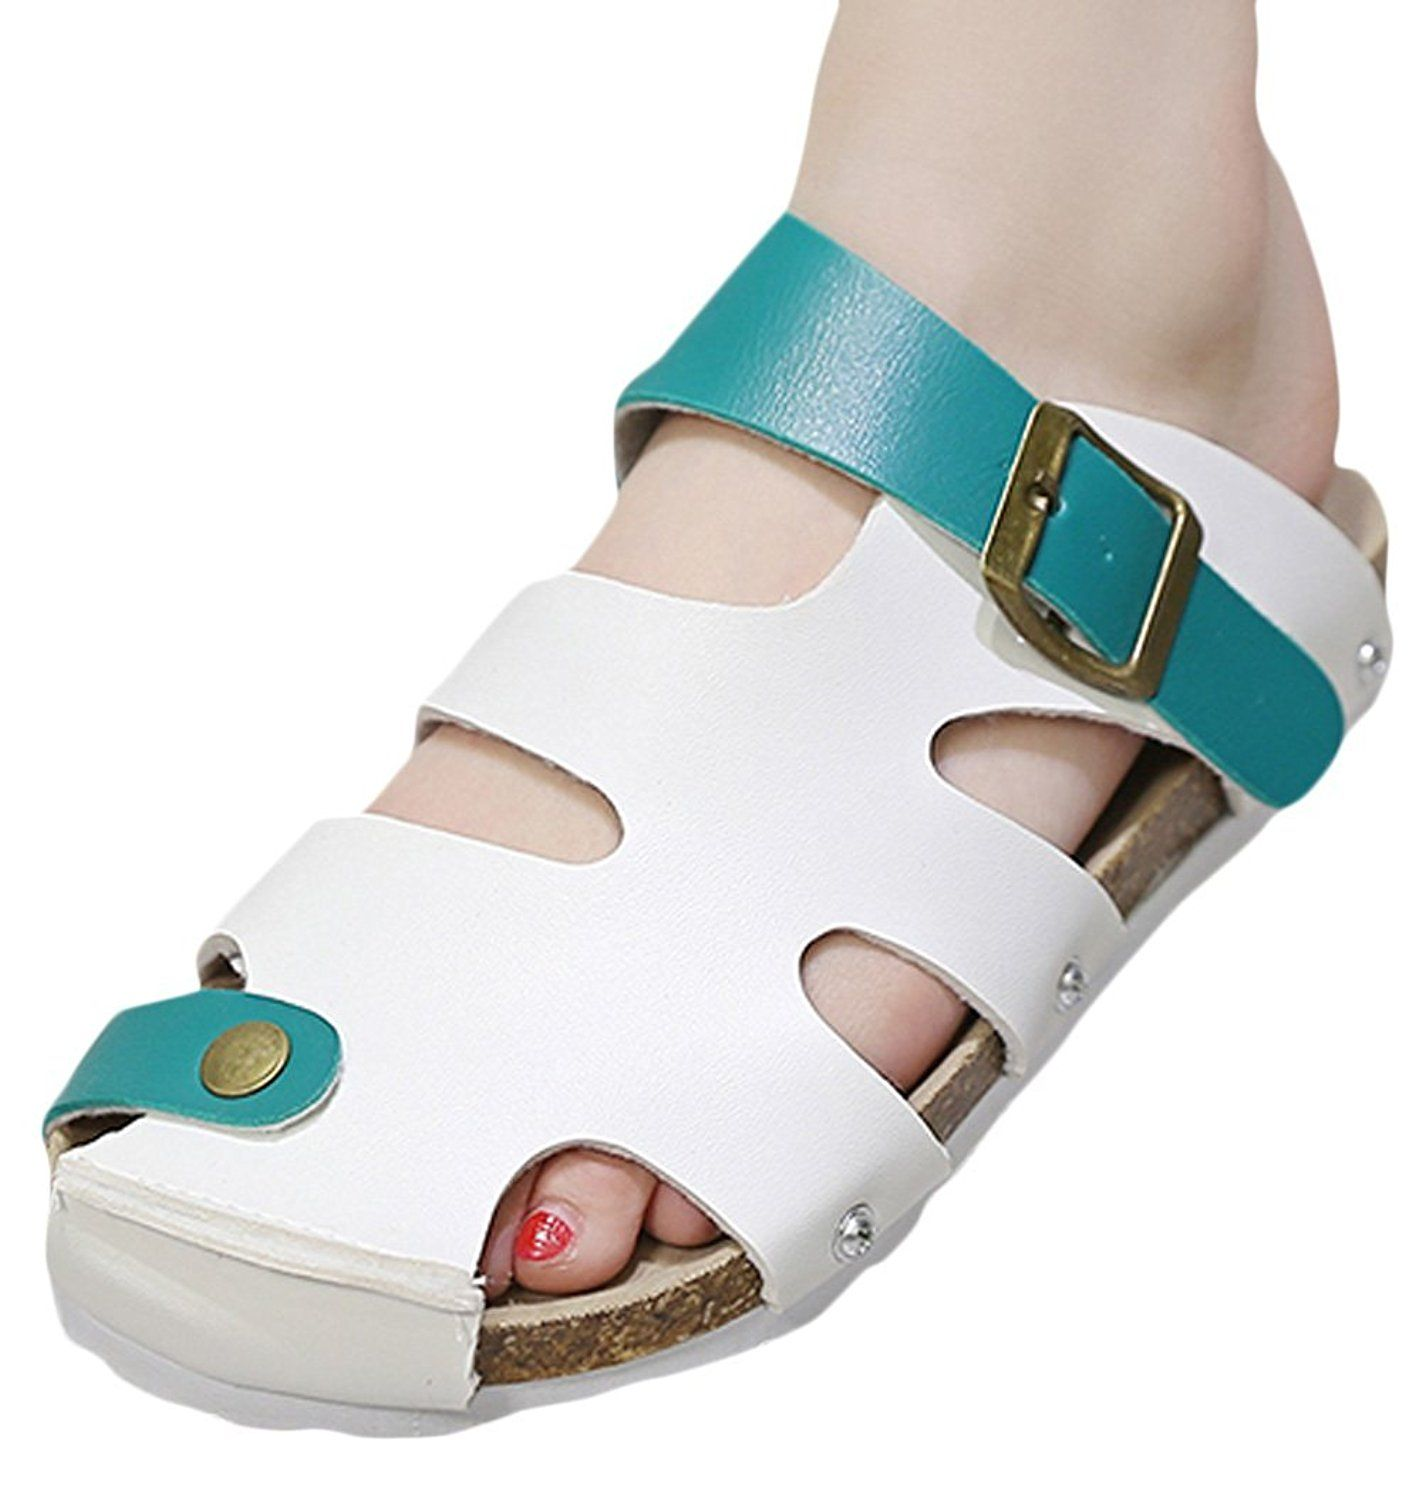 d9698502954f Women s Ladies Flat Soft Wood Sole Footed Keen Slippers Athletic Sandals      You can get additional details at the image link.